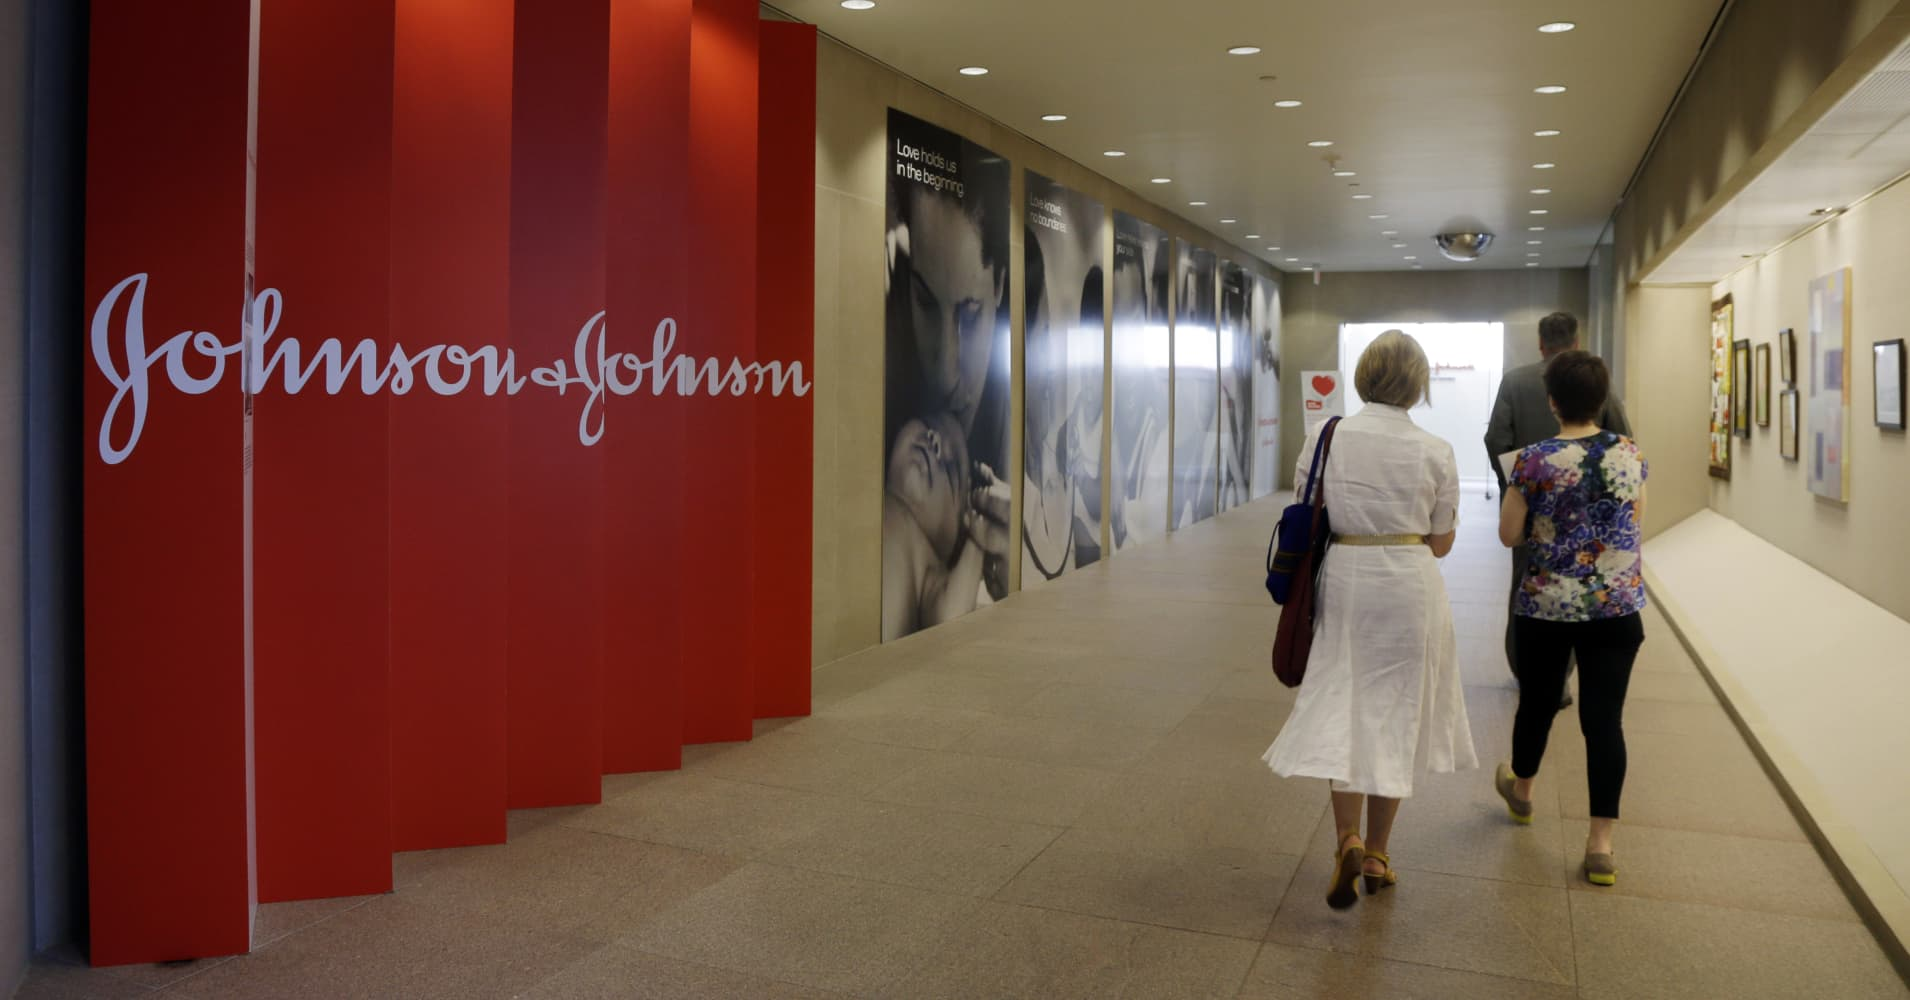 Johnson & Johnson opioid ruling is a positive for shareholders, analyst says